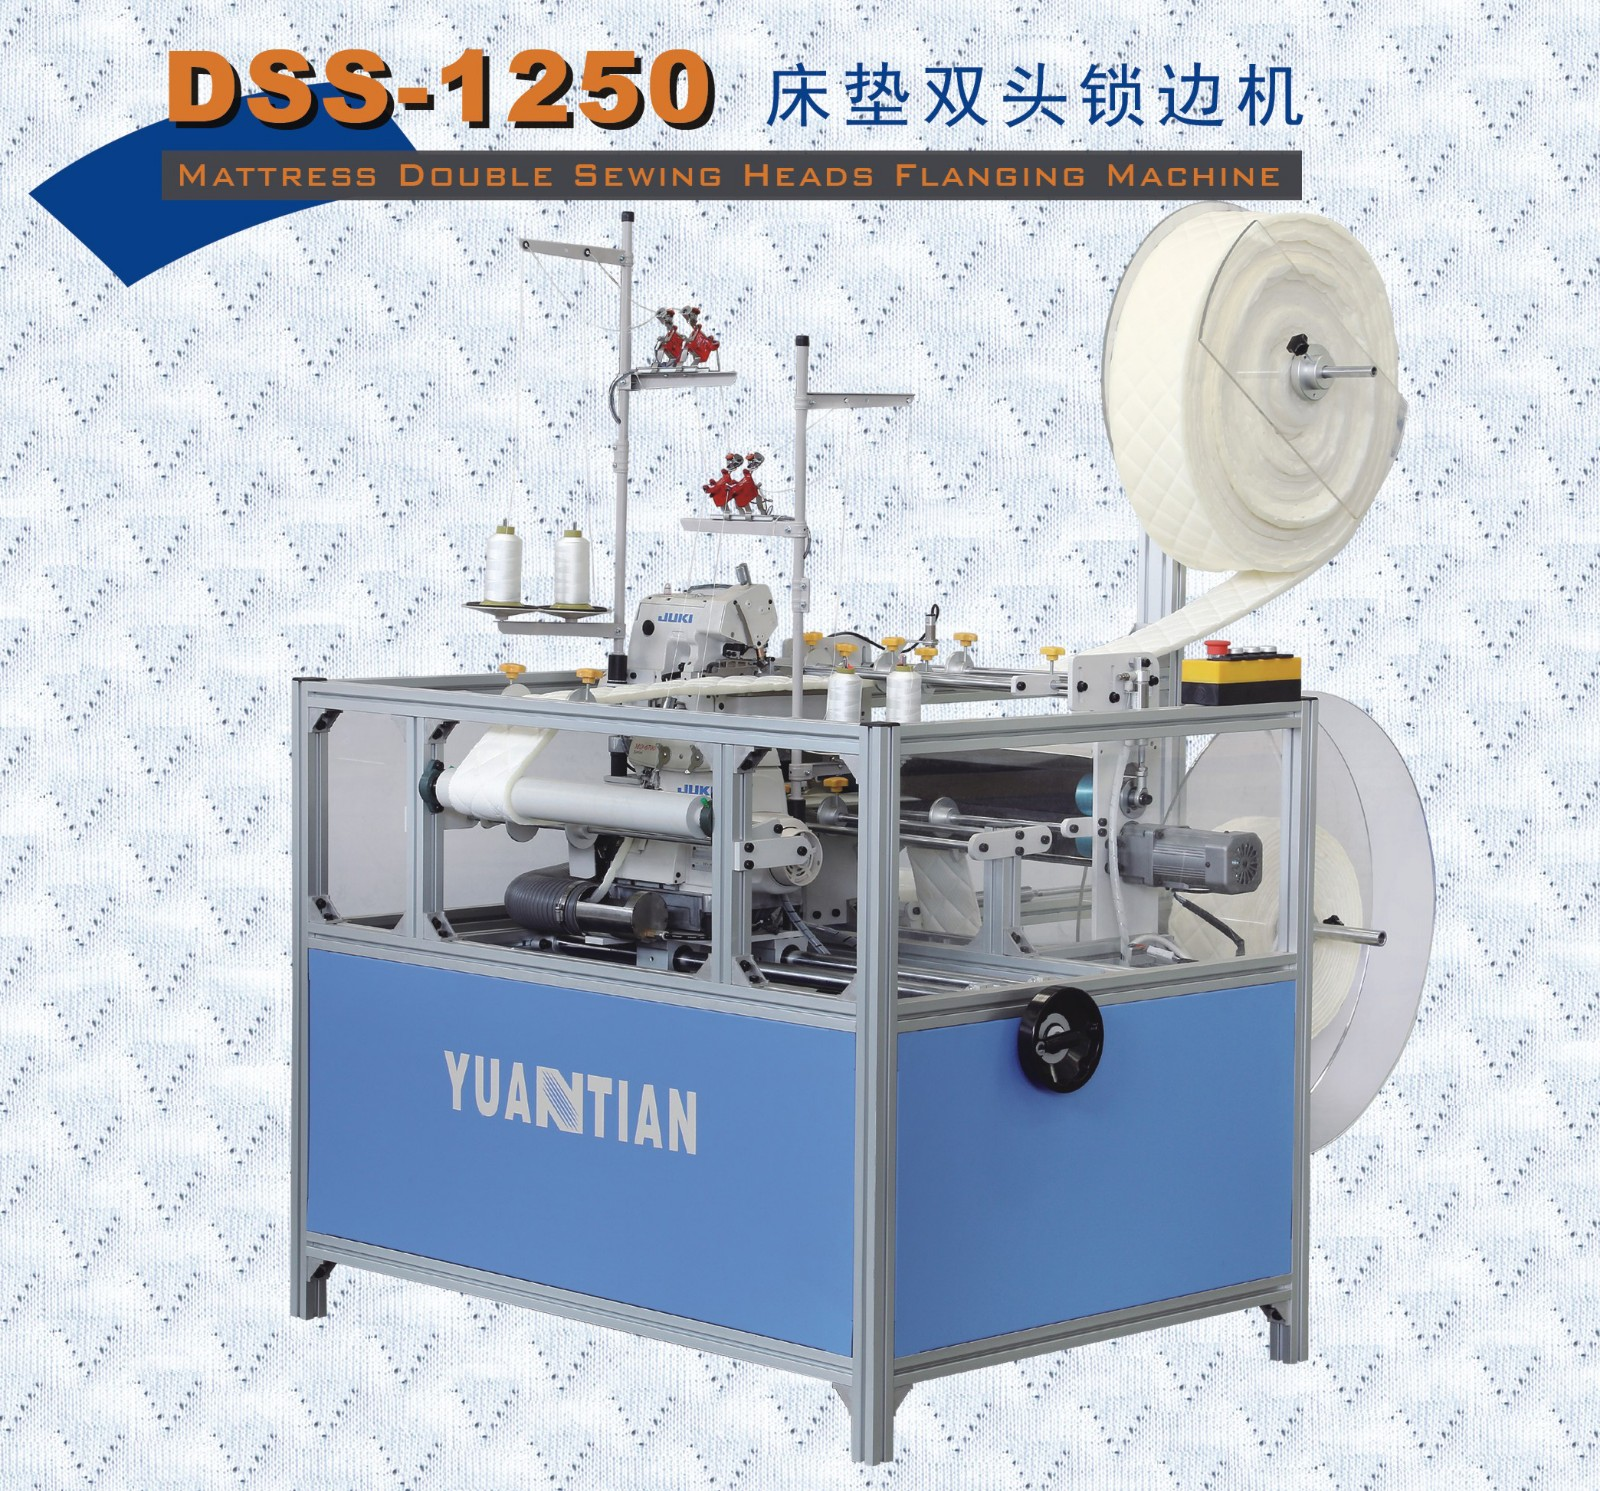 Double Sewing Heads Flanging Machine flanging Mattress Flanging Machine mattress YUANTIAN Mattress Machines